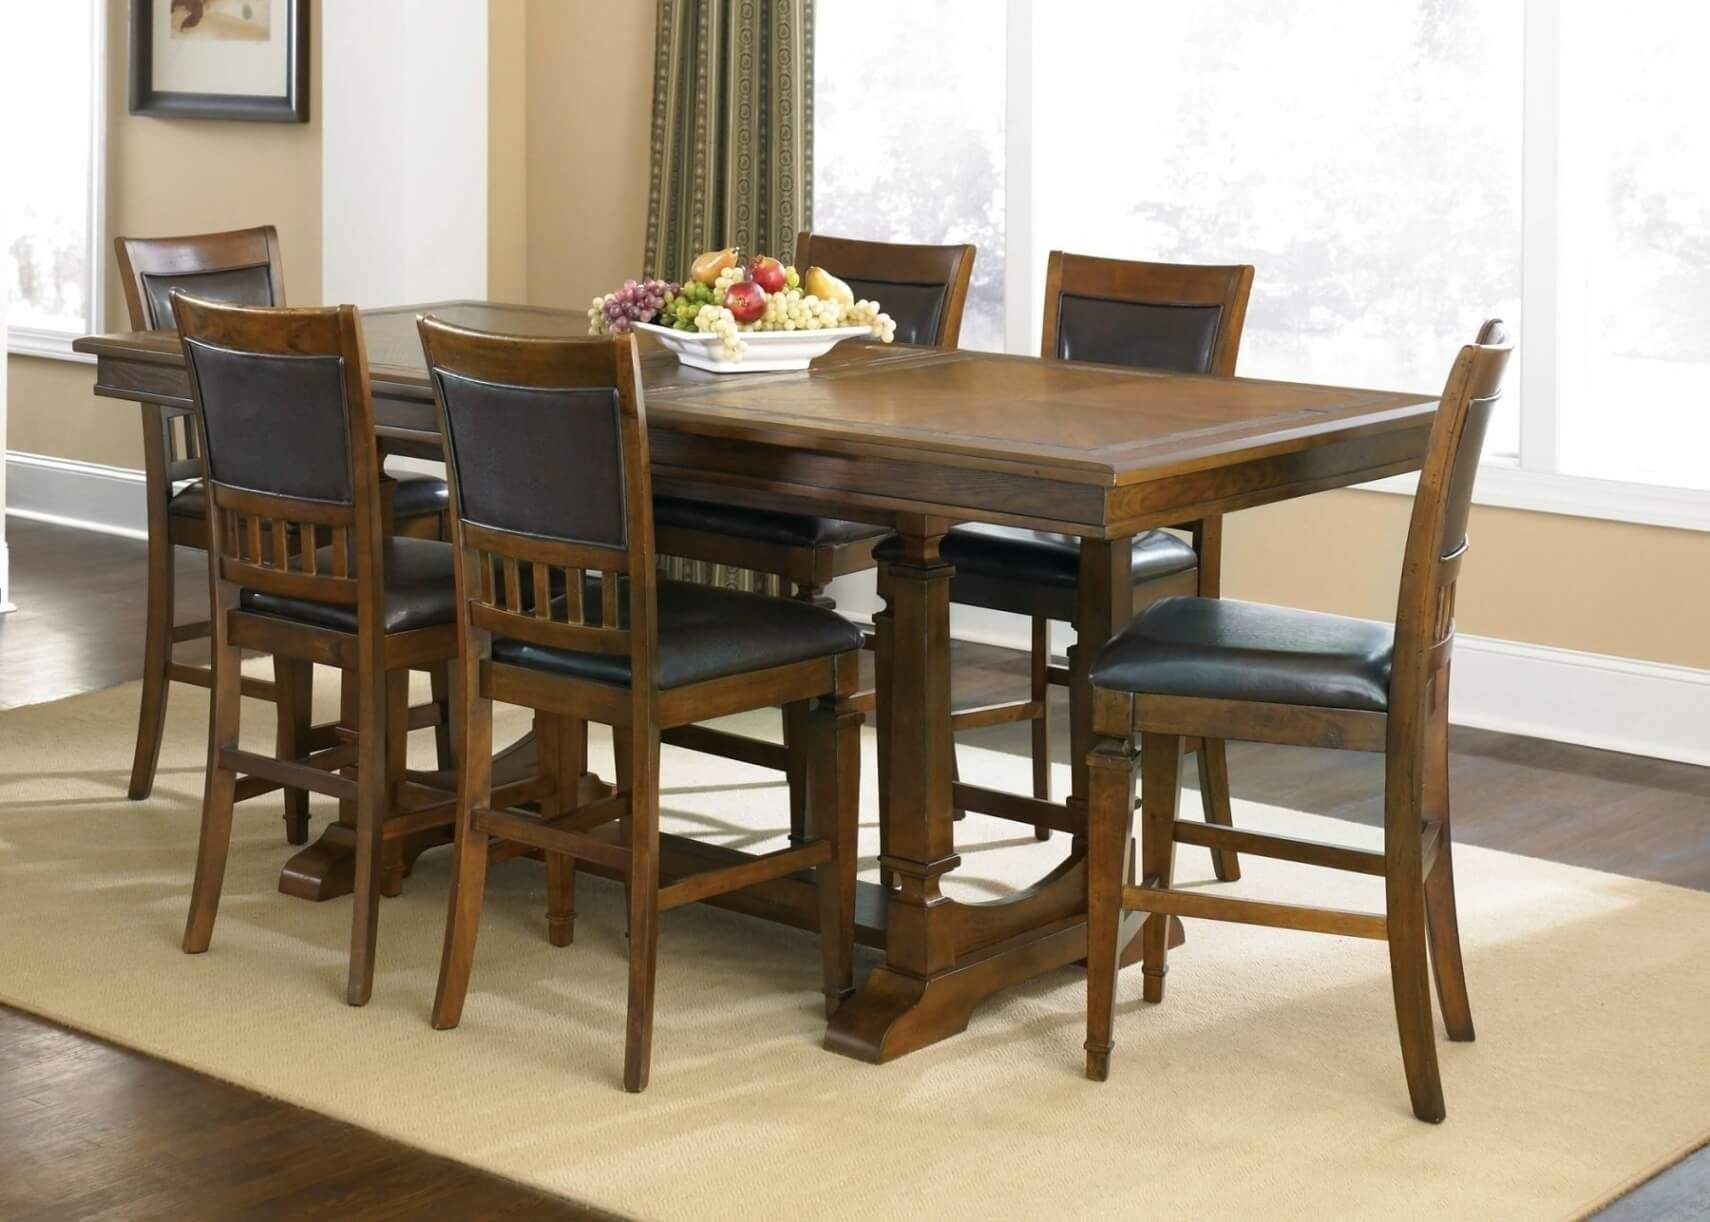 How To Find And Buy Kitchen Tables From Ikea  Theydesign  Theydesign